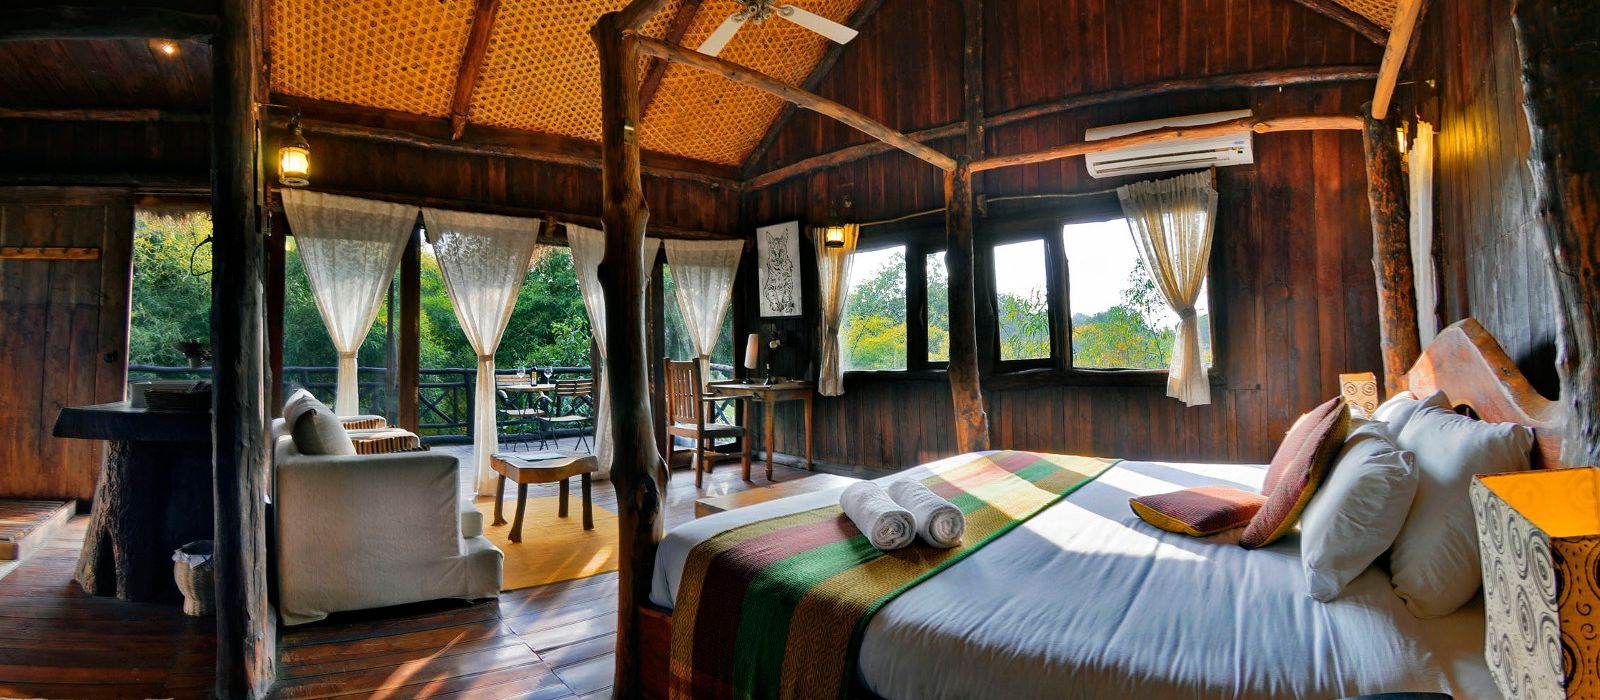 Hotel Tree House Hideaway Nordindien